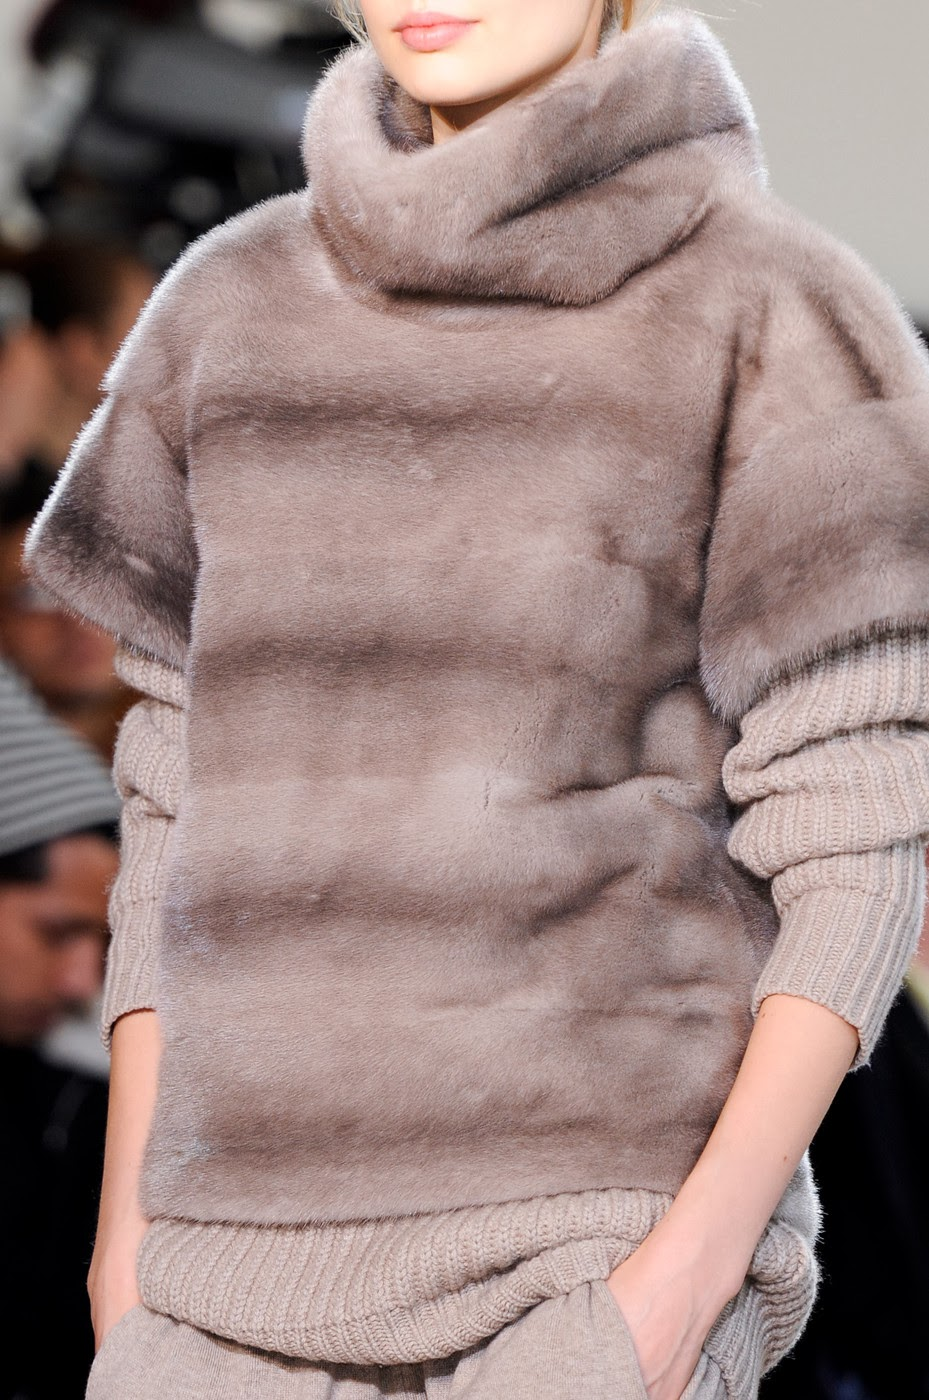 Michael Kors -Fall 2014 - Winter 2015